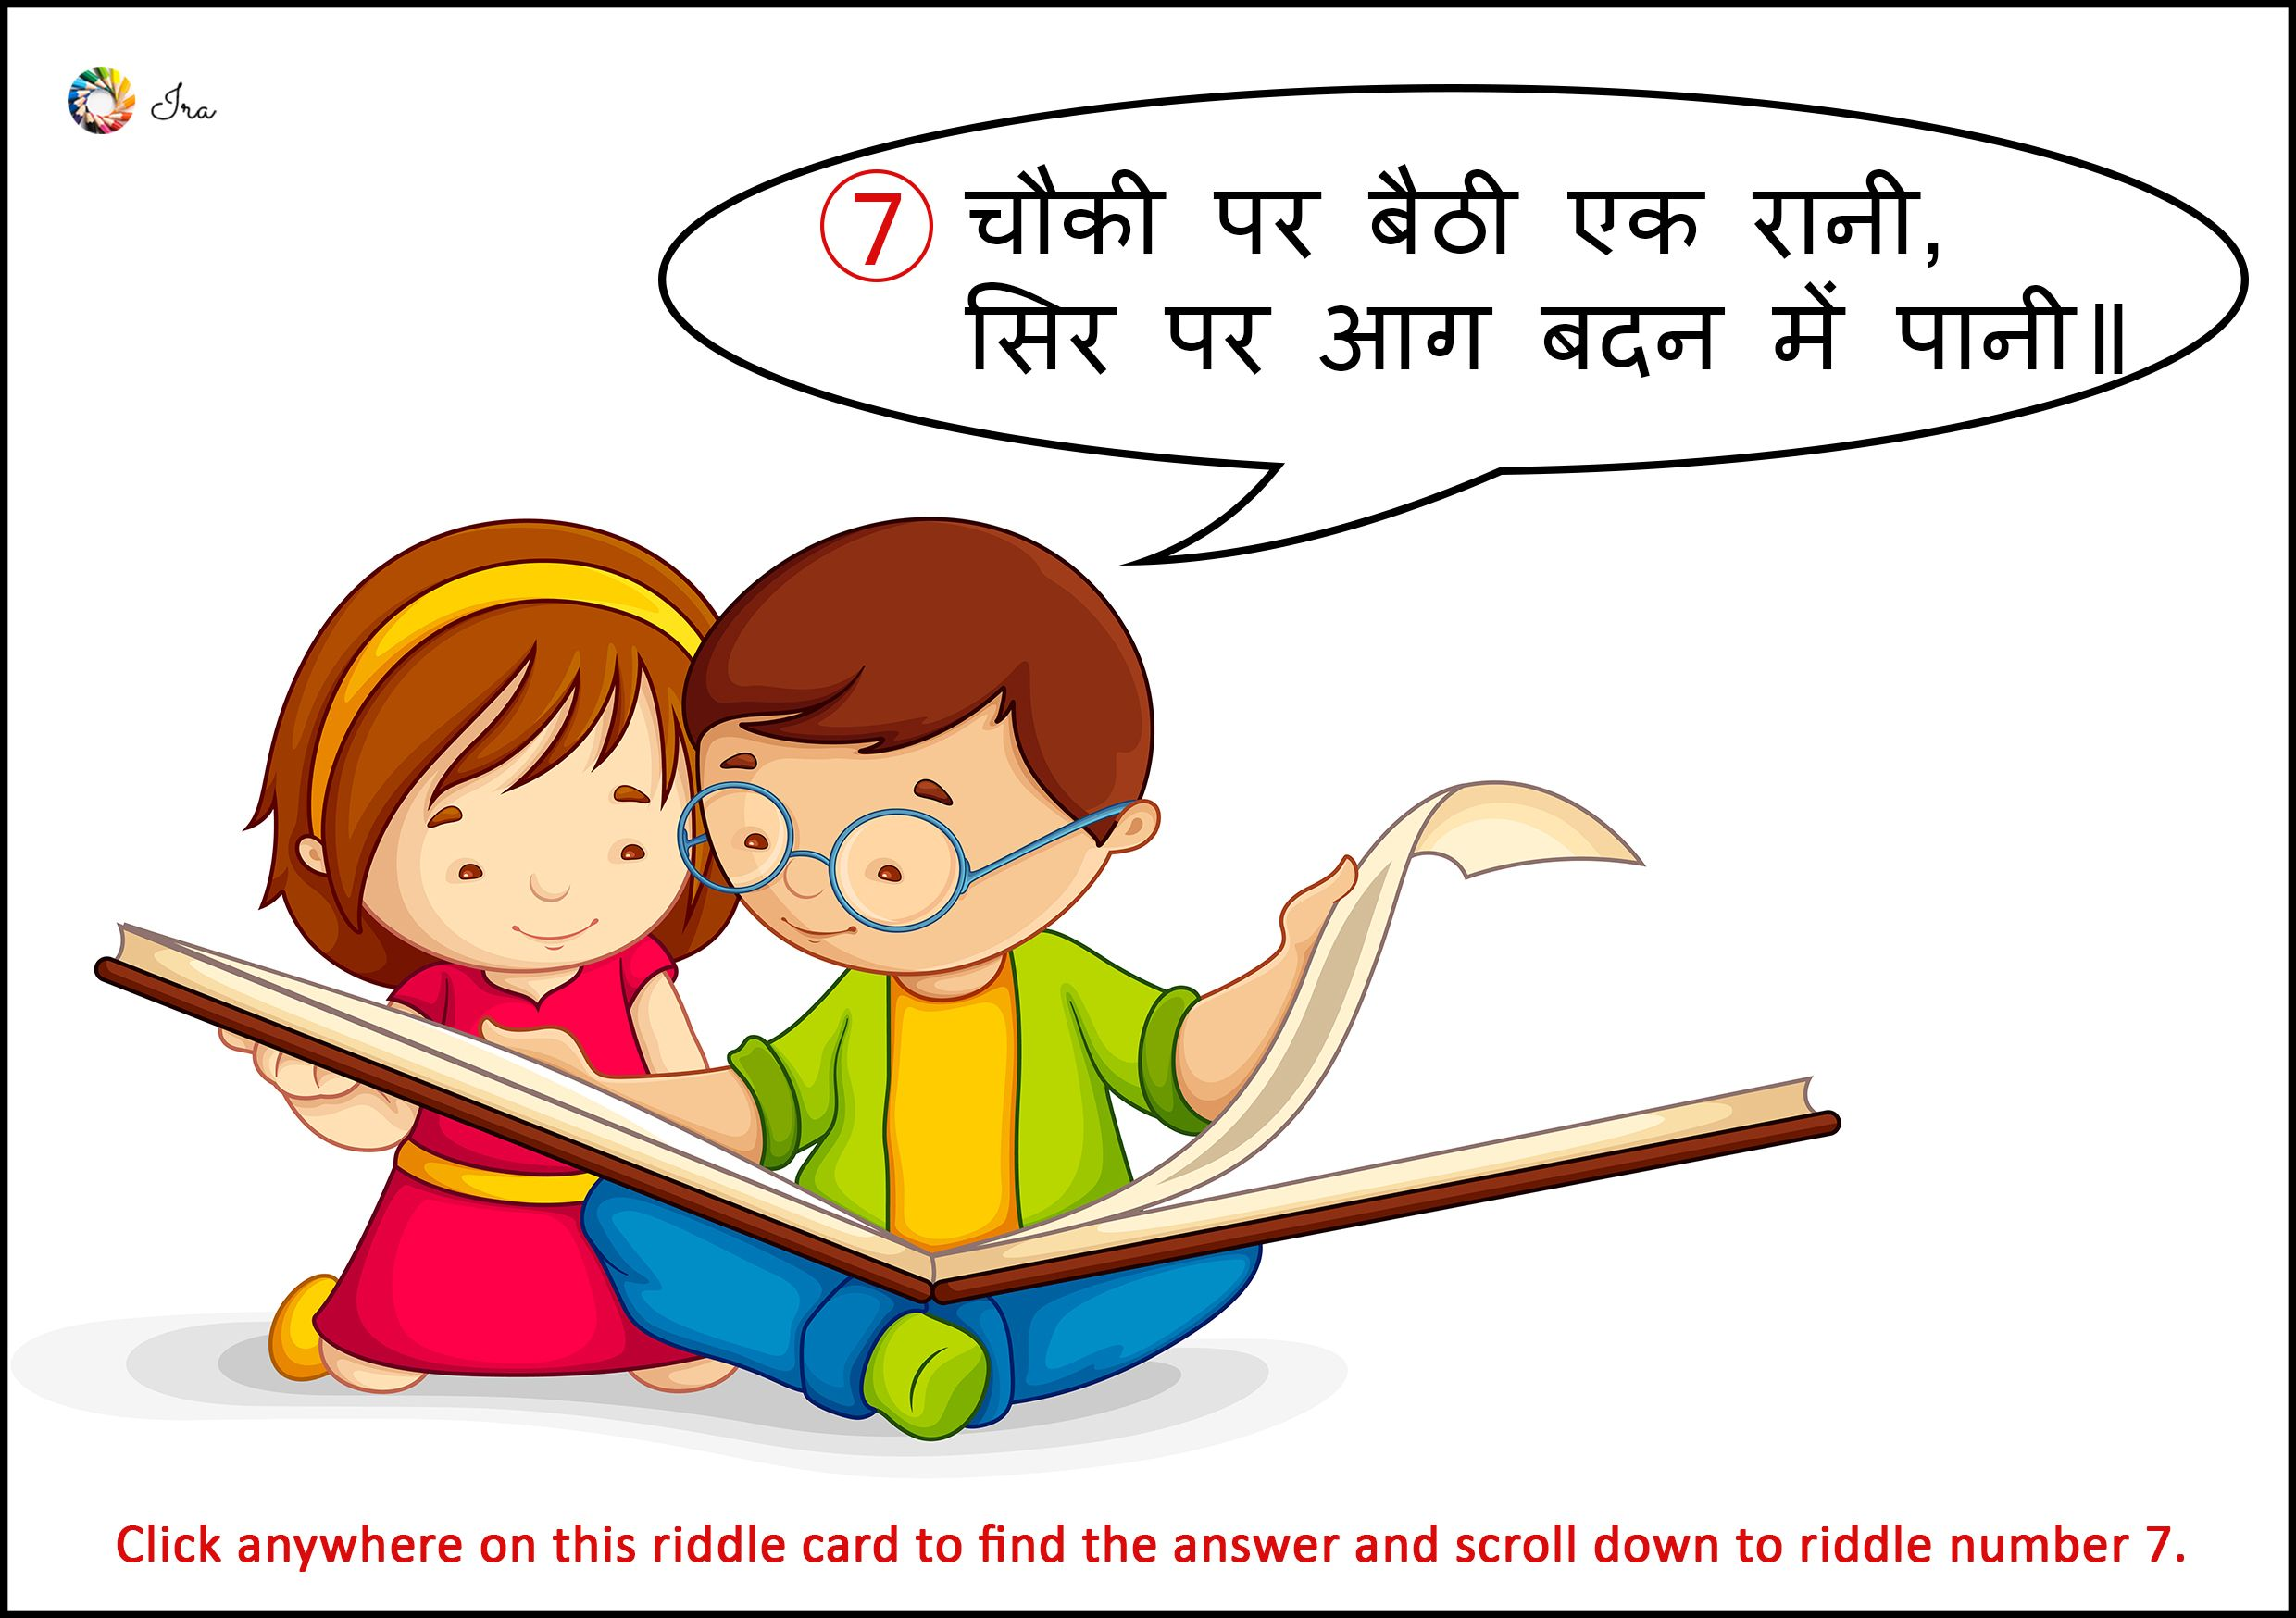 60 Rare Riddles In Hindi With Answers With Images